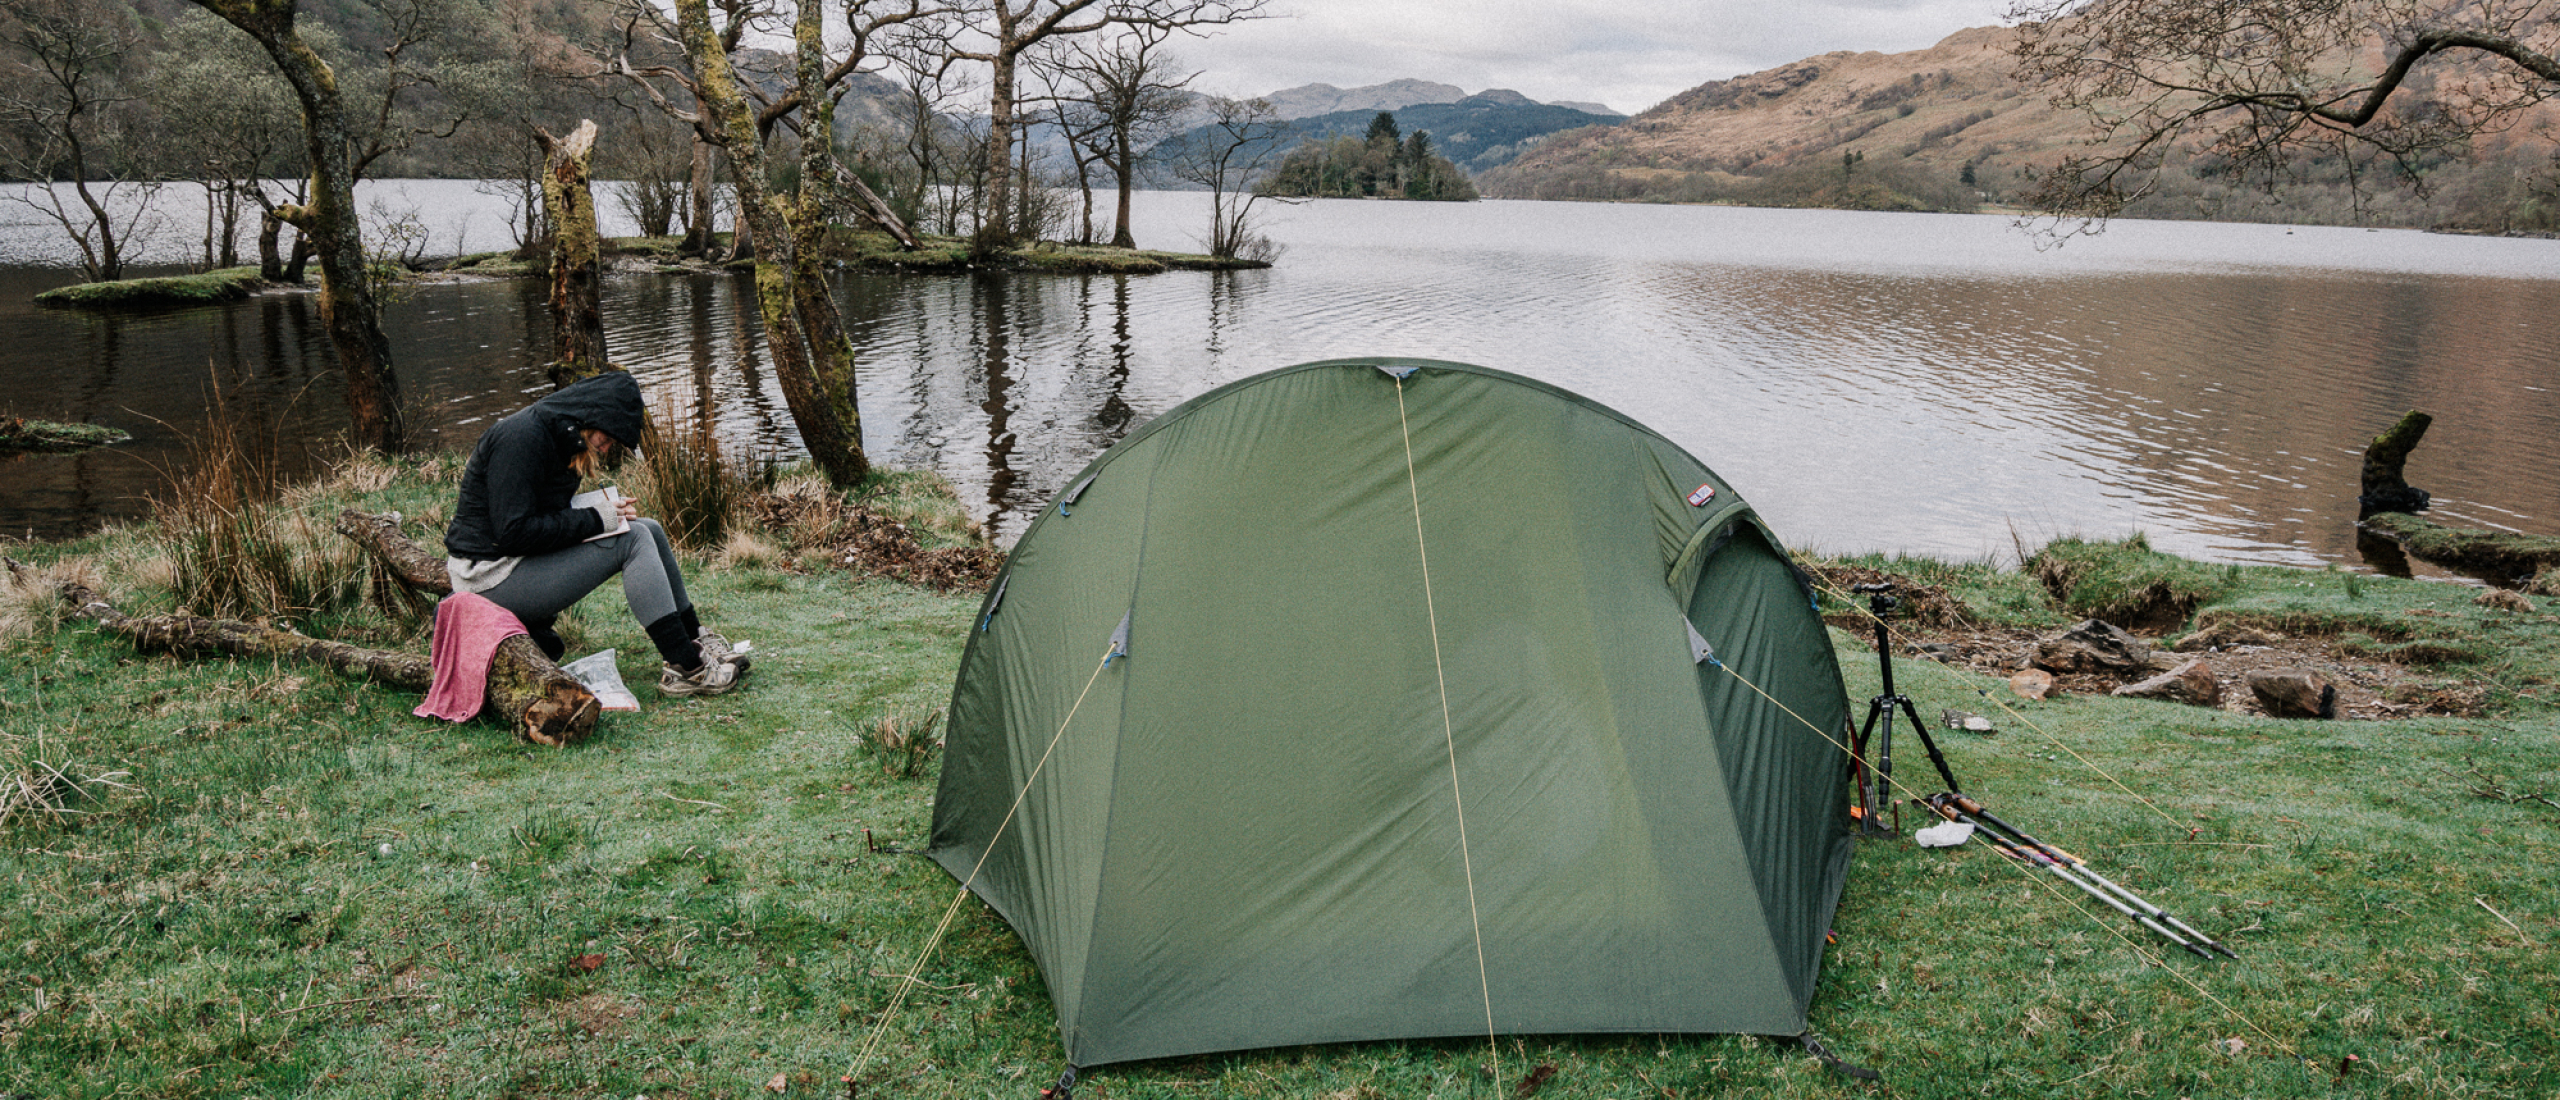 camping management zones